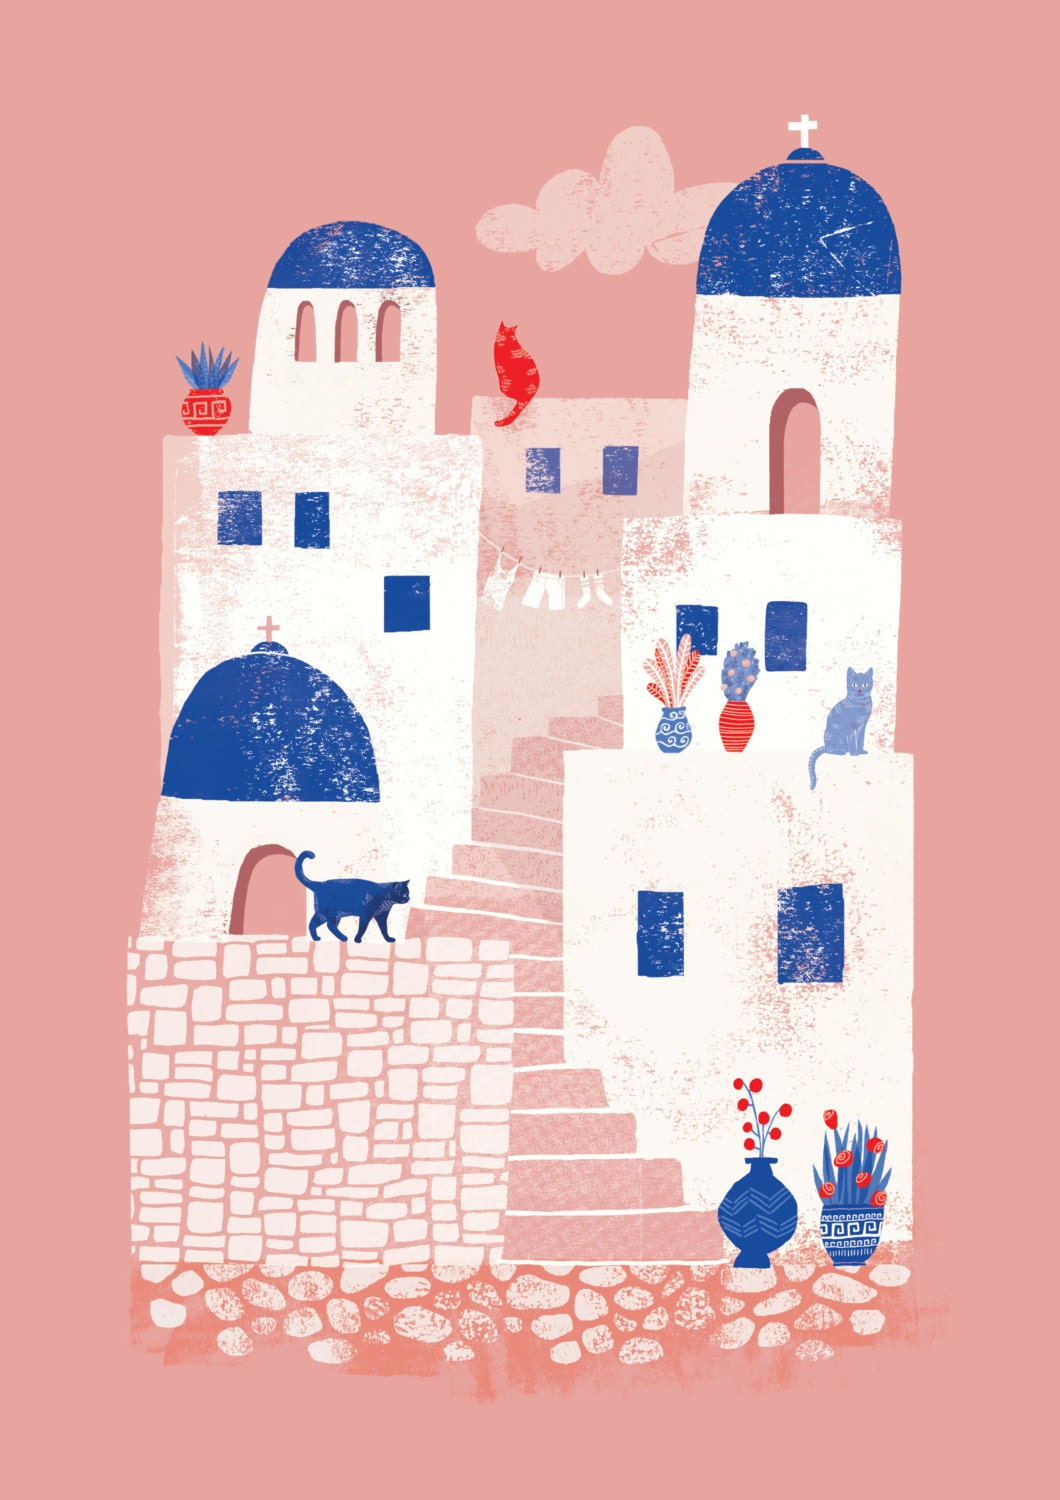 santorini greece      a4 art print by essillustration on etsy